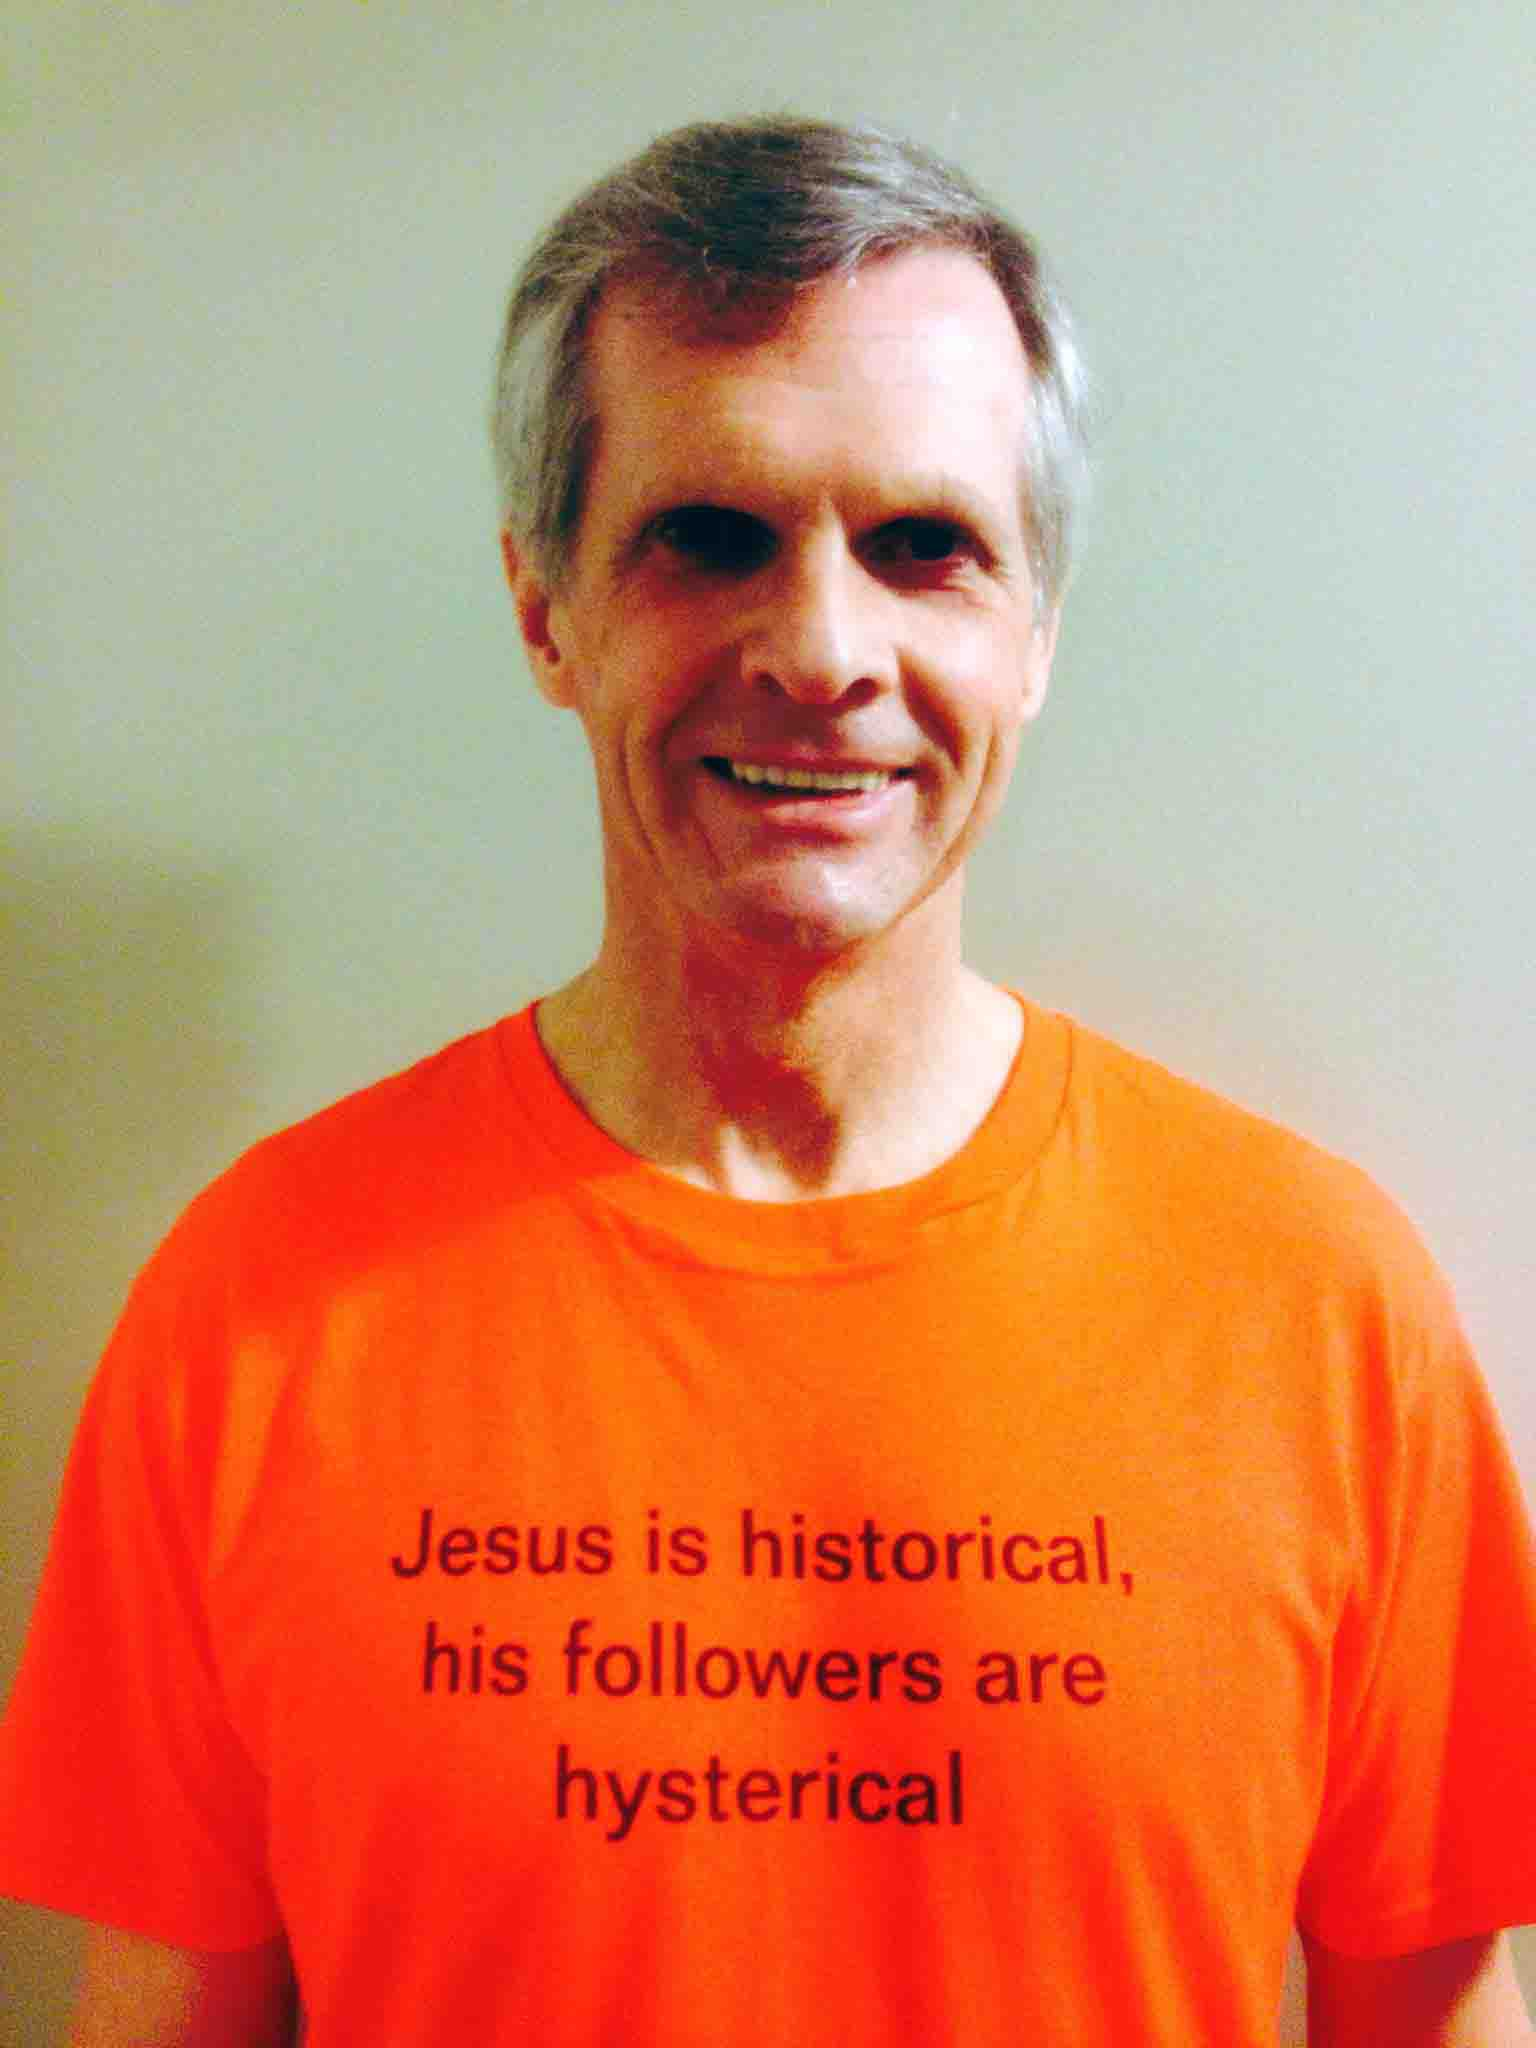 Darwin Bedford wearing his shirt that says 'Jesus is historical His followers are hysterical'